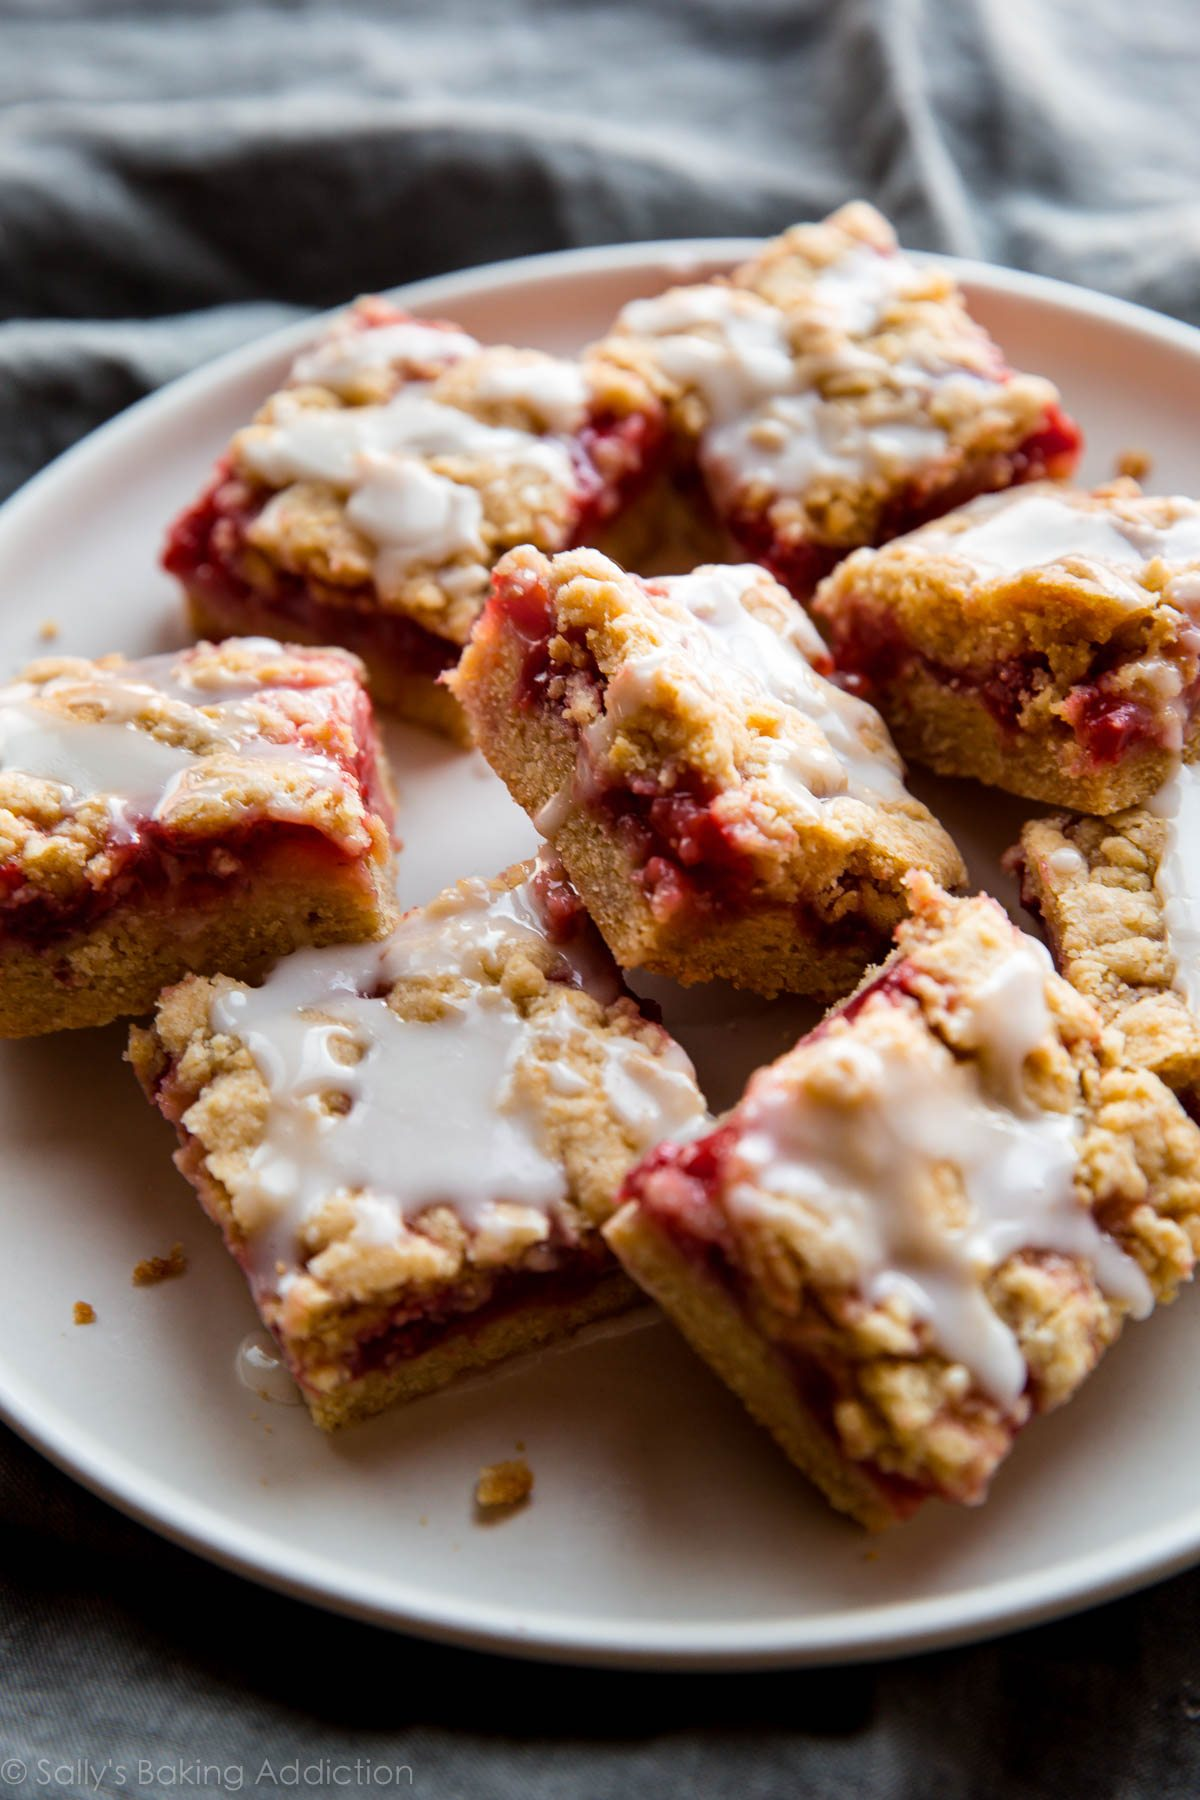 Lemon strawberry crumb bars bring some blissful sunshine inside with a buttery crust and topping, fresh strawberries, and sweet lemon glaze! Recipe on sallysbakingaddiction.com